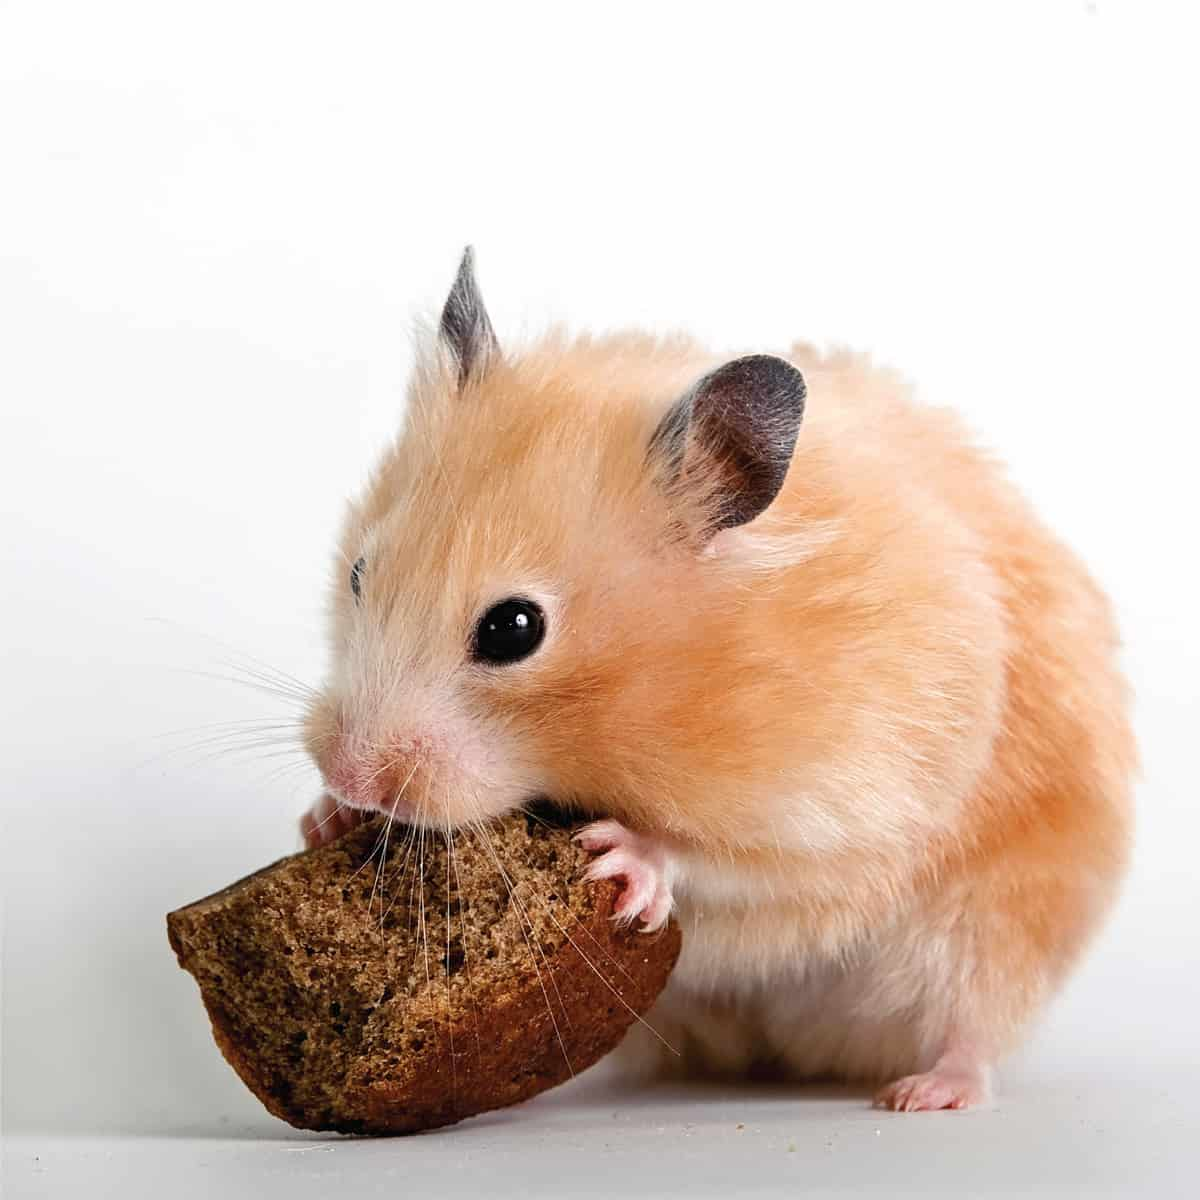 Beige hamster nibbling a bread crust on a white background